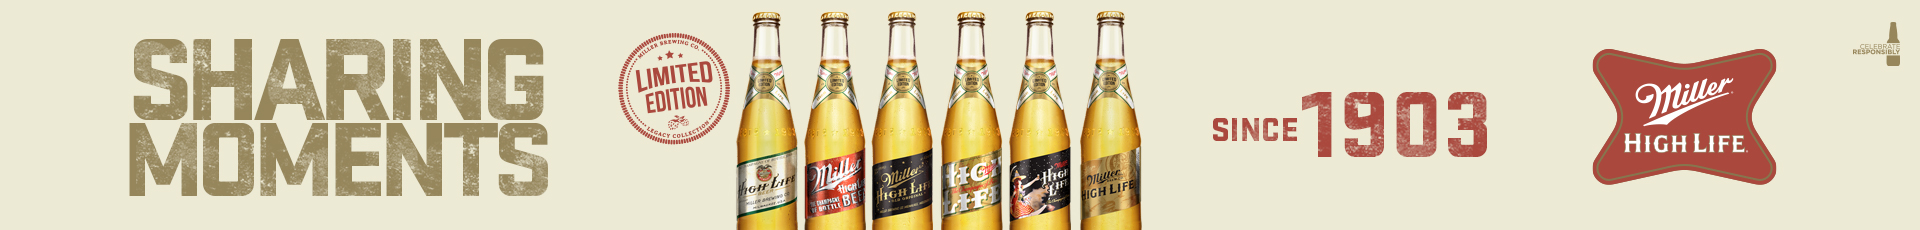 /miller_high_life?utm_source=WEB&utm_medium=banner%20catalogo%20superior&utm_campaign=miller%20high%20life